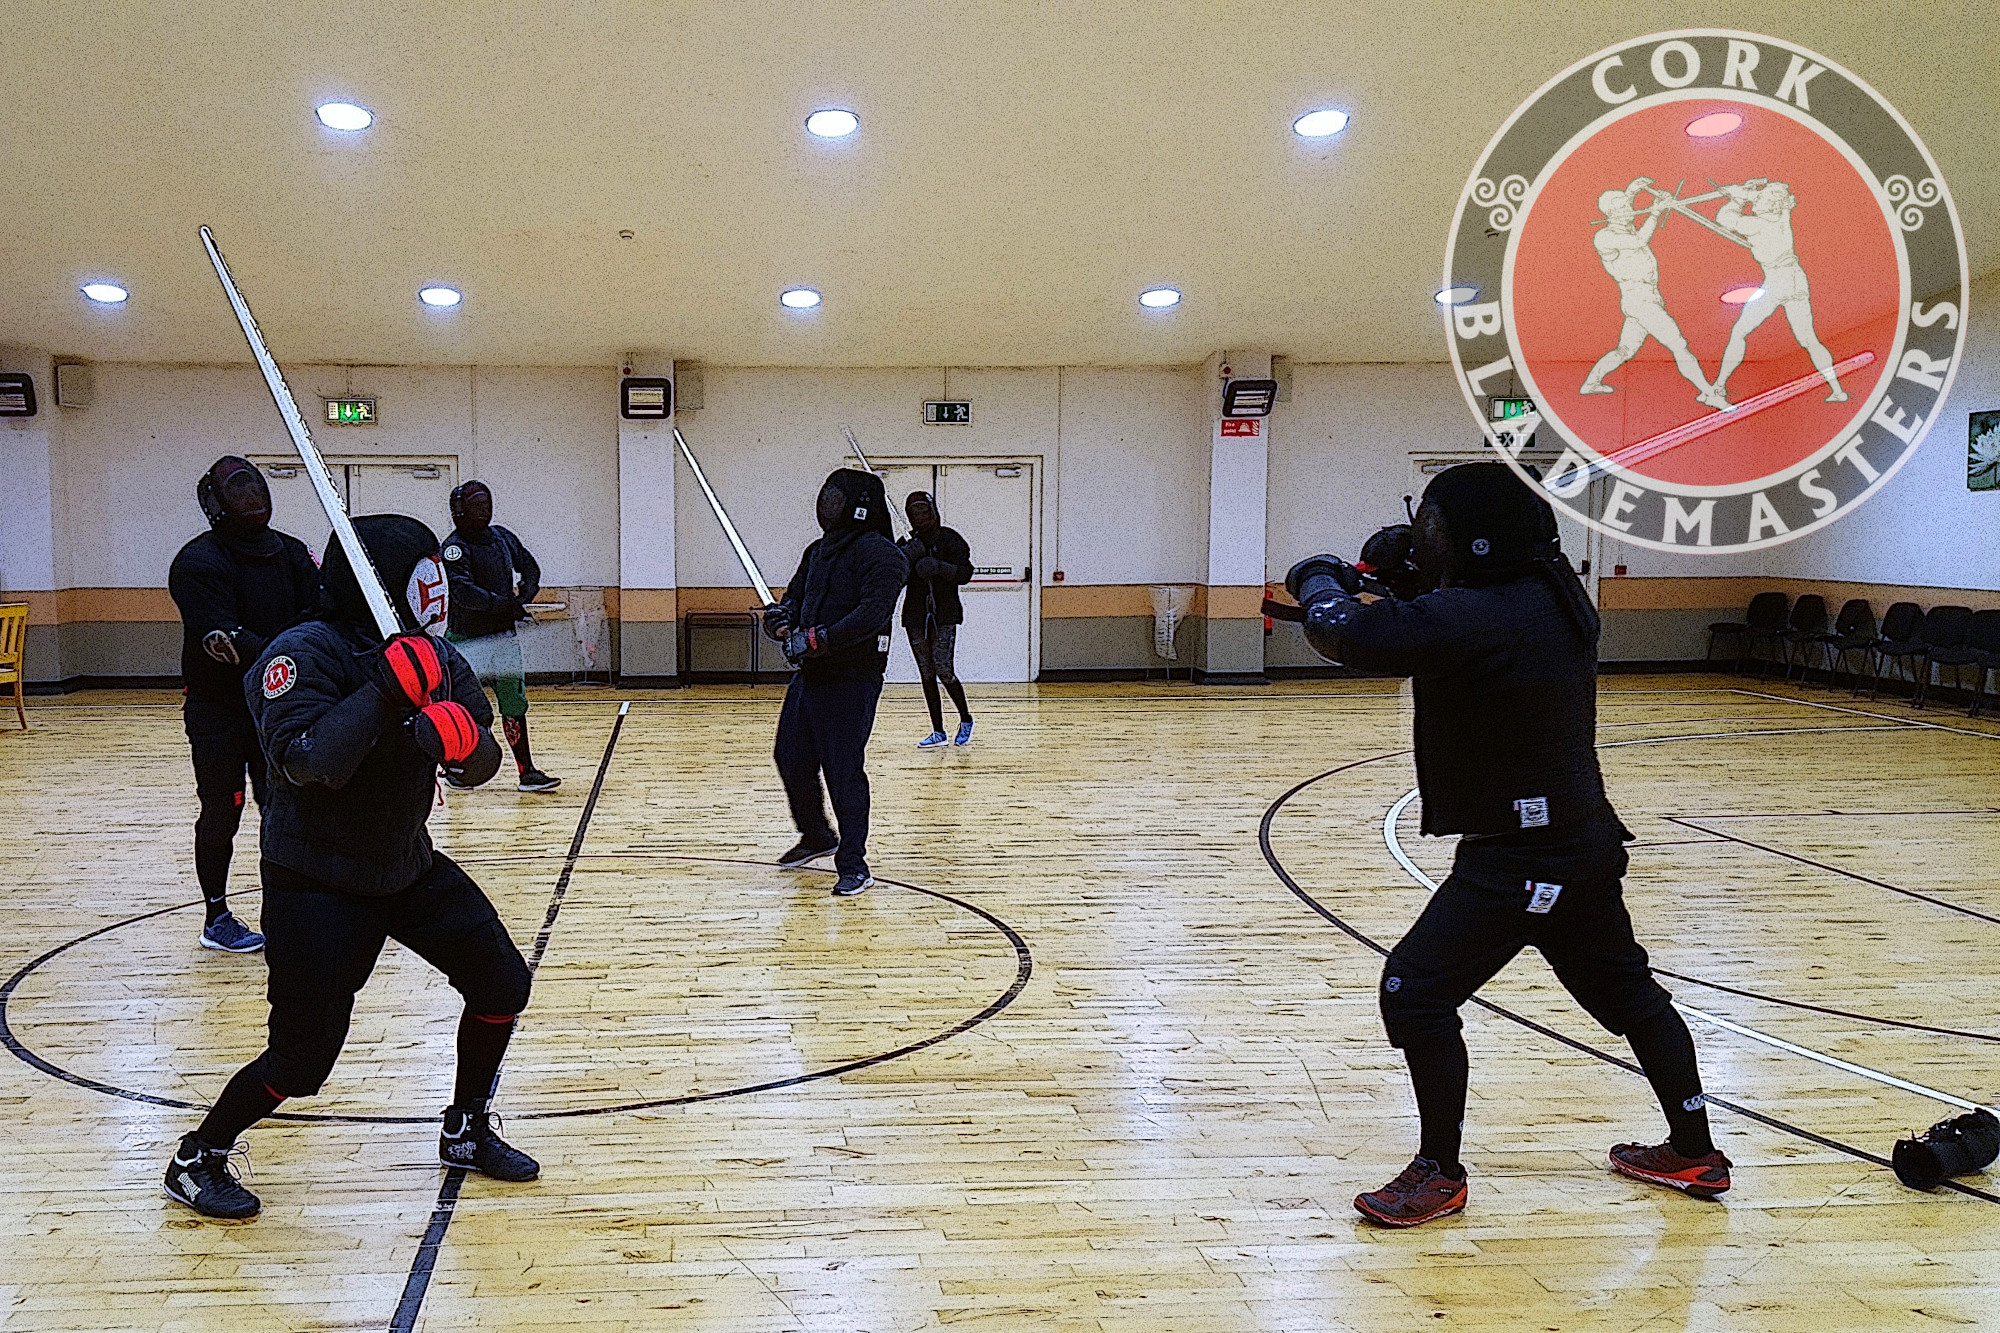 Longsword Training – Wed 15/01/2020